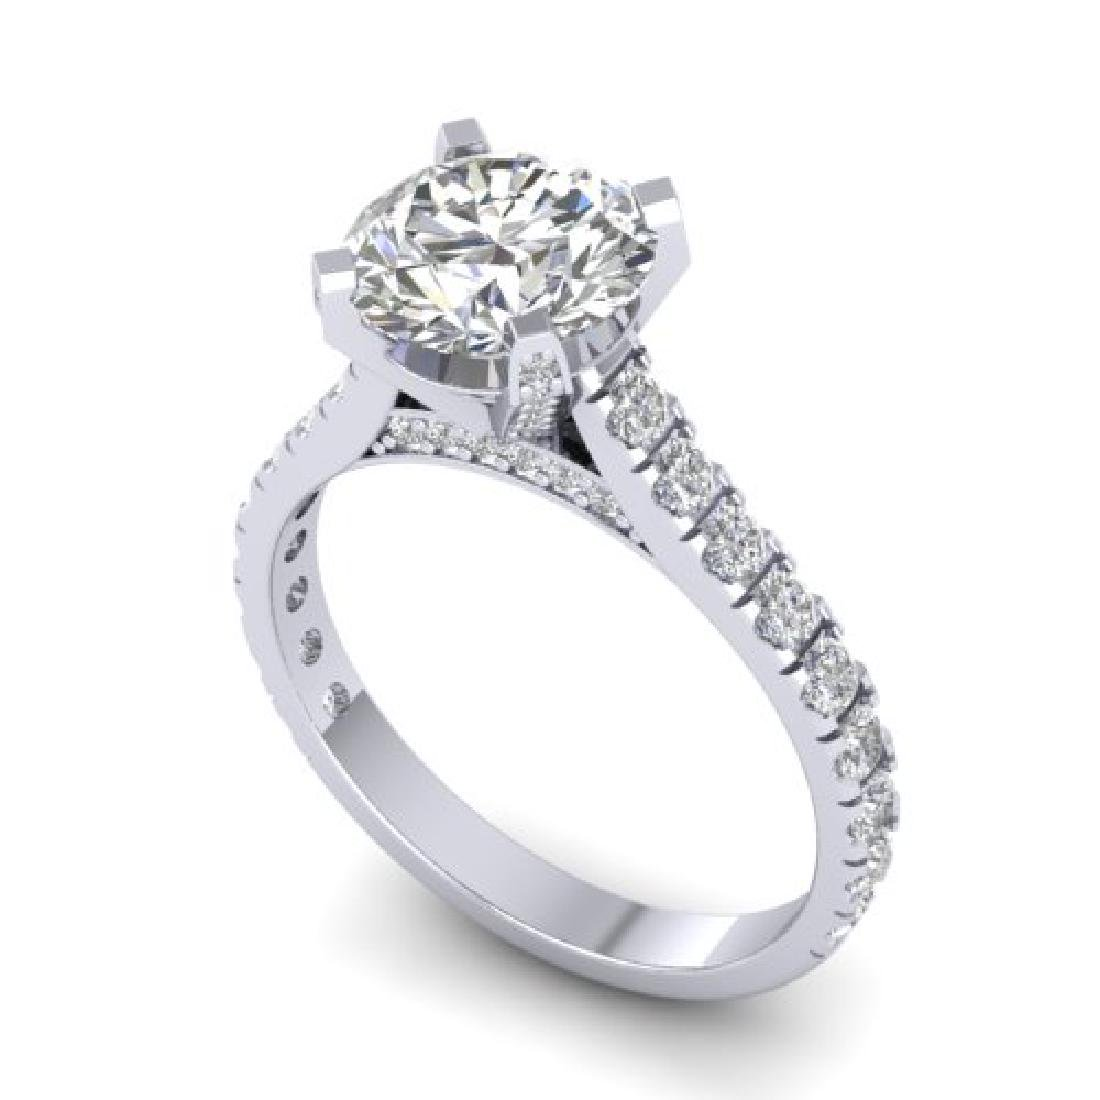 2.4 CTW Certified VS/SI Diamond Solitaire Art Deco Ring - 2